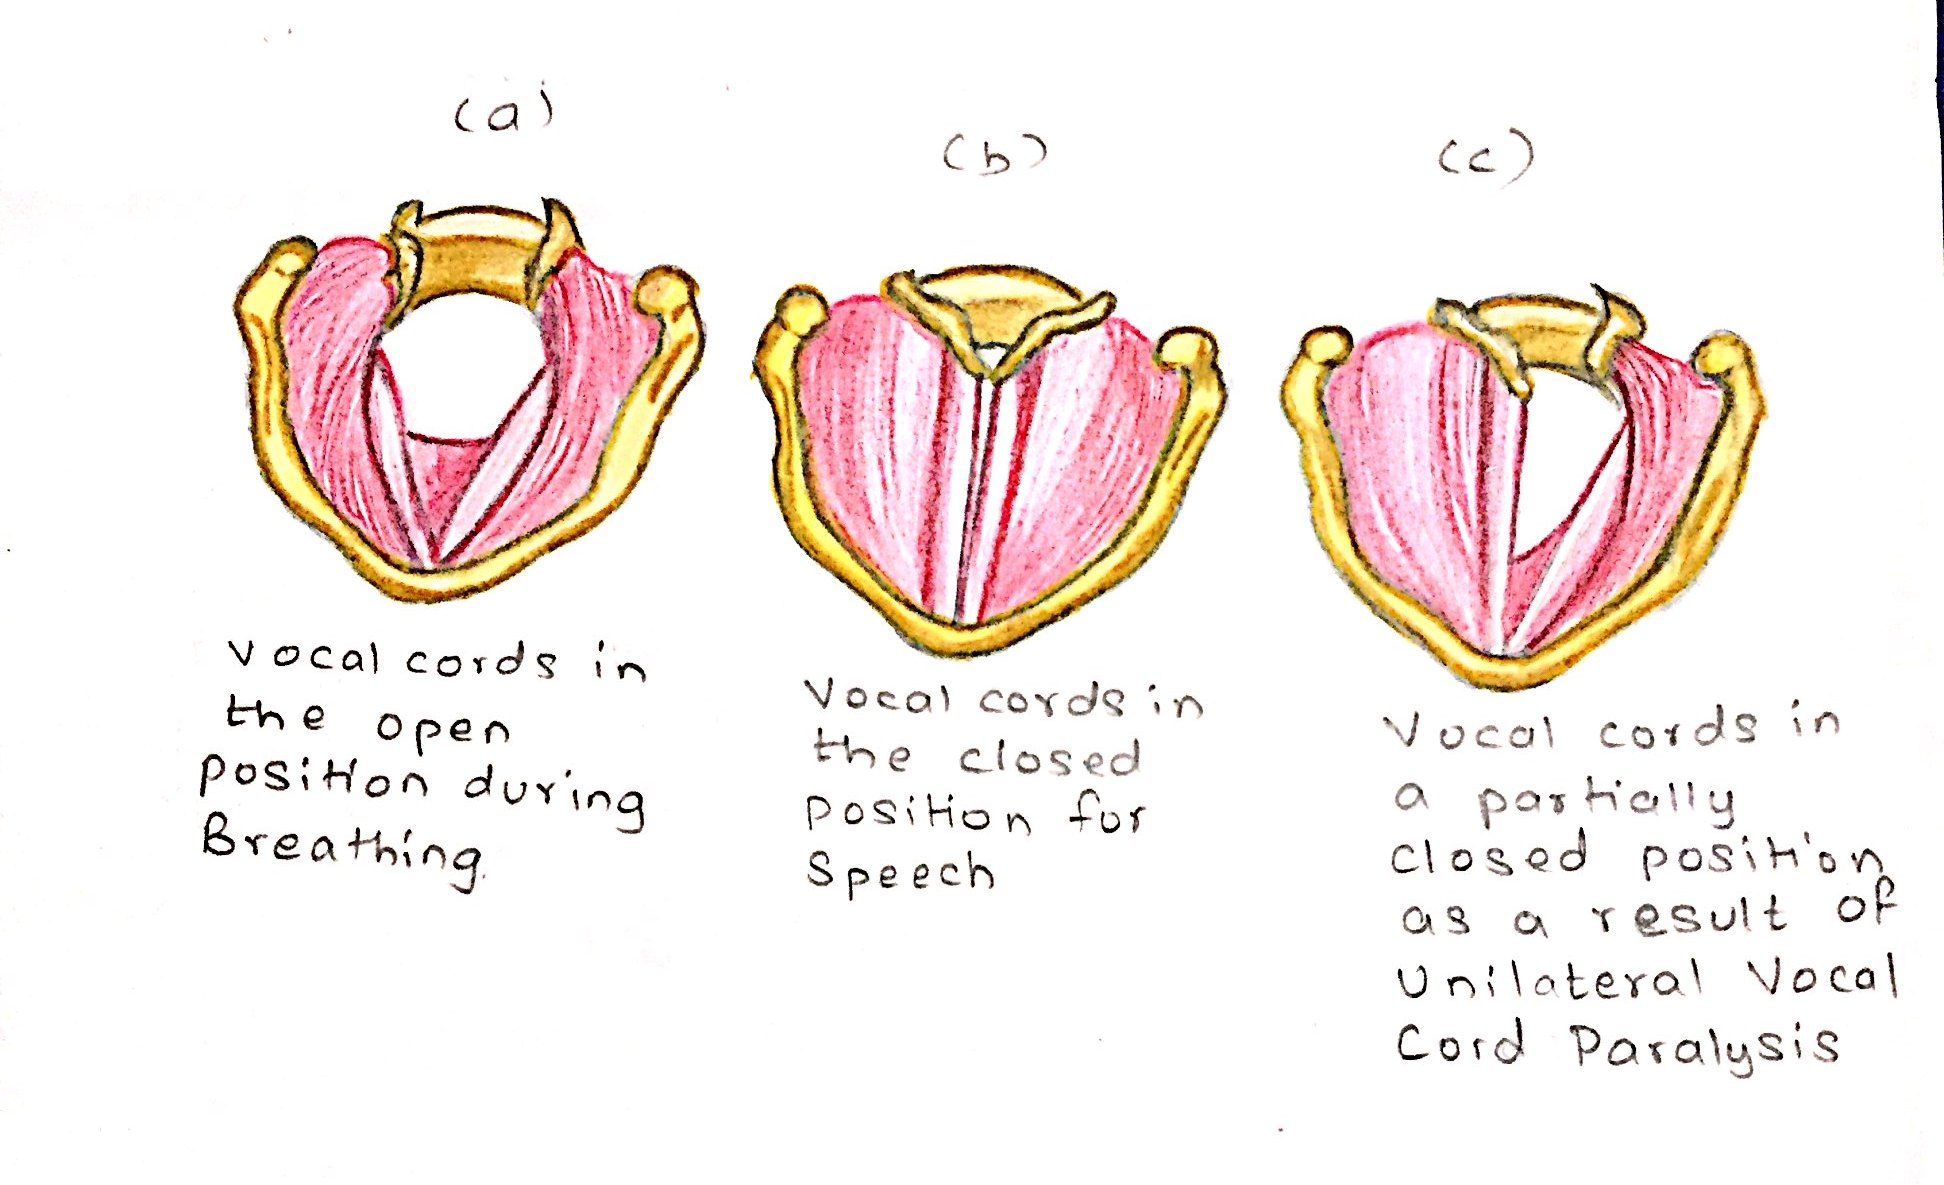 hight resolution of the diagram a b c show different positions of vocal cords in different conditions